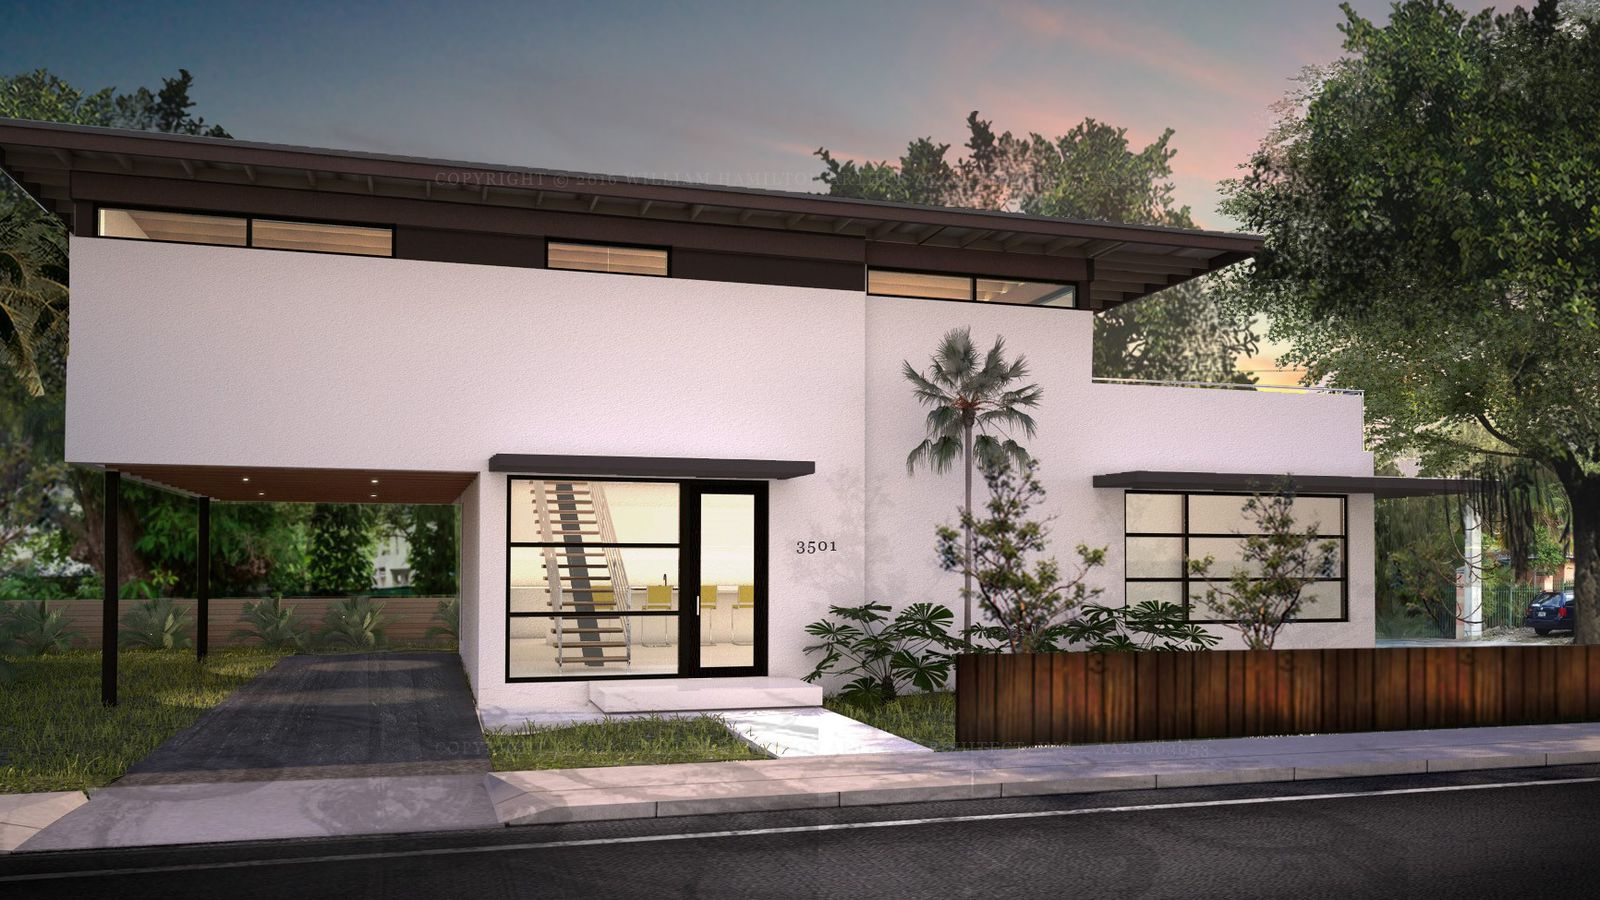 Miami S Glass House Project Launches In Coconut Grove